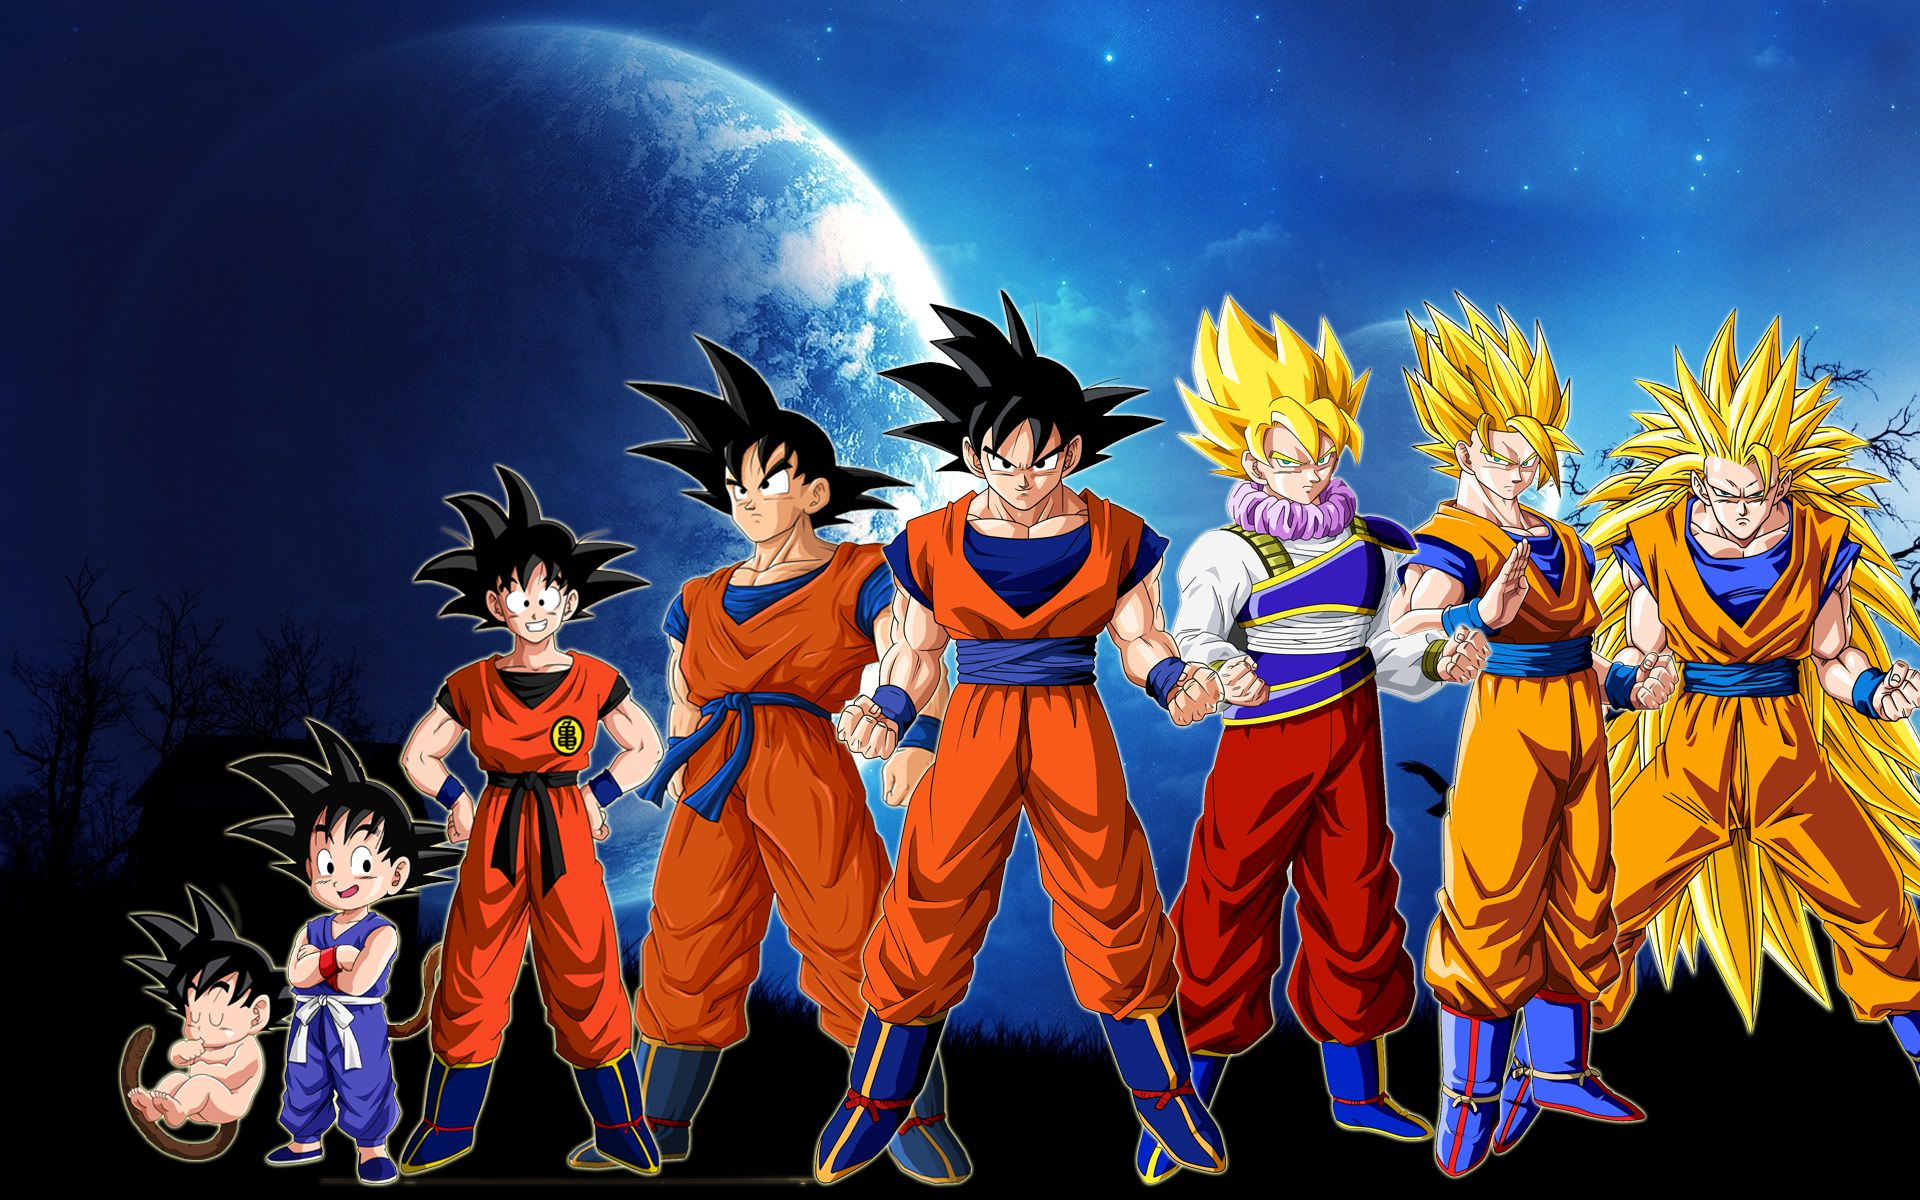 Dragon ball z dating site in Perth